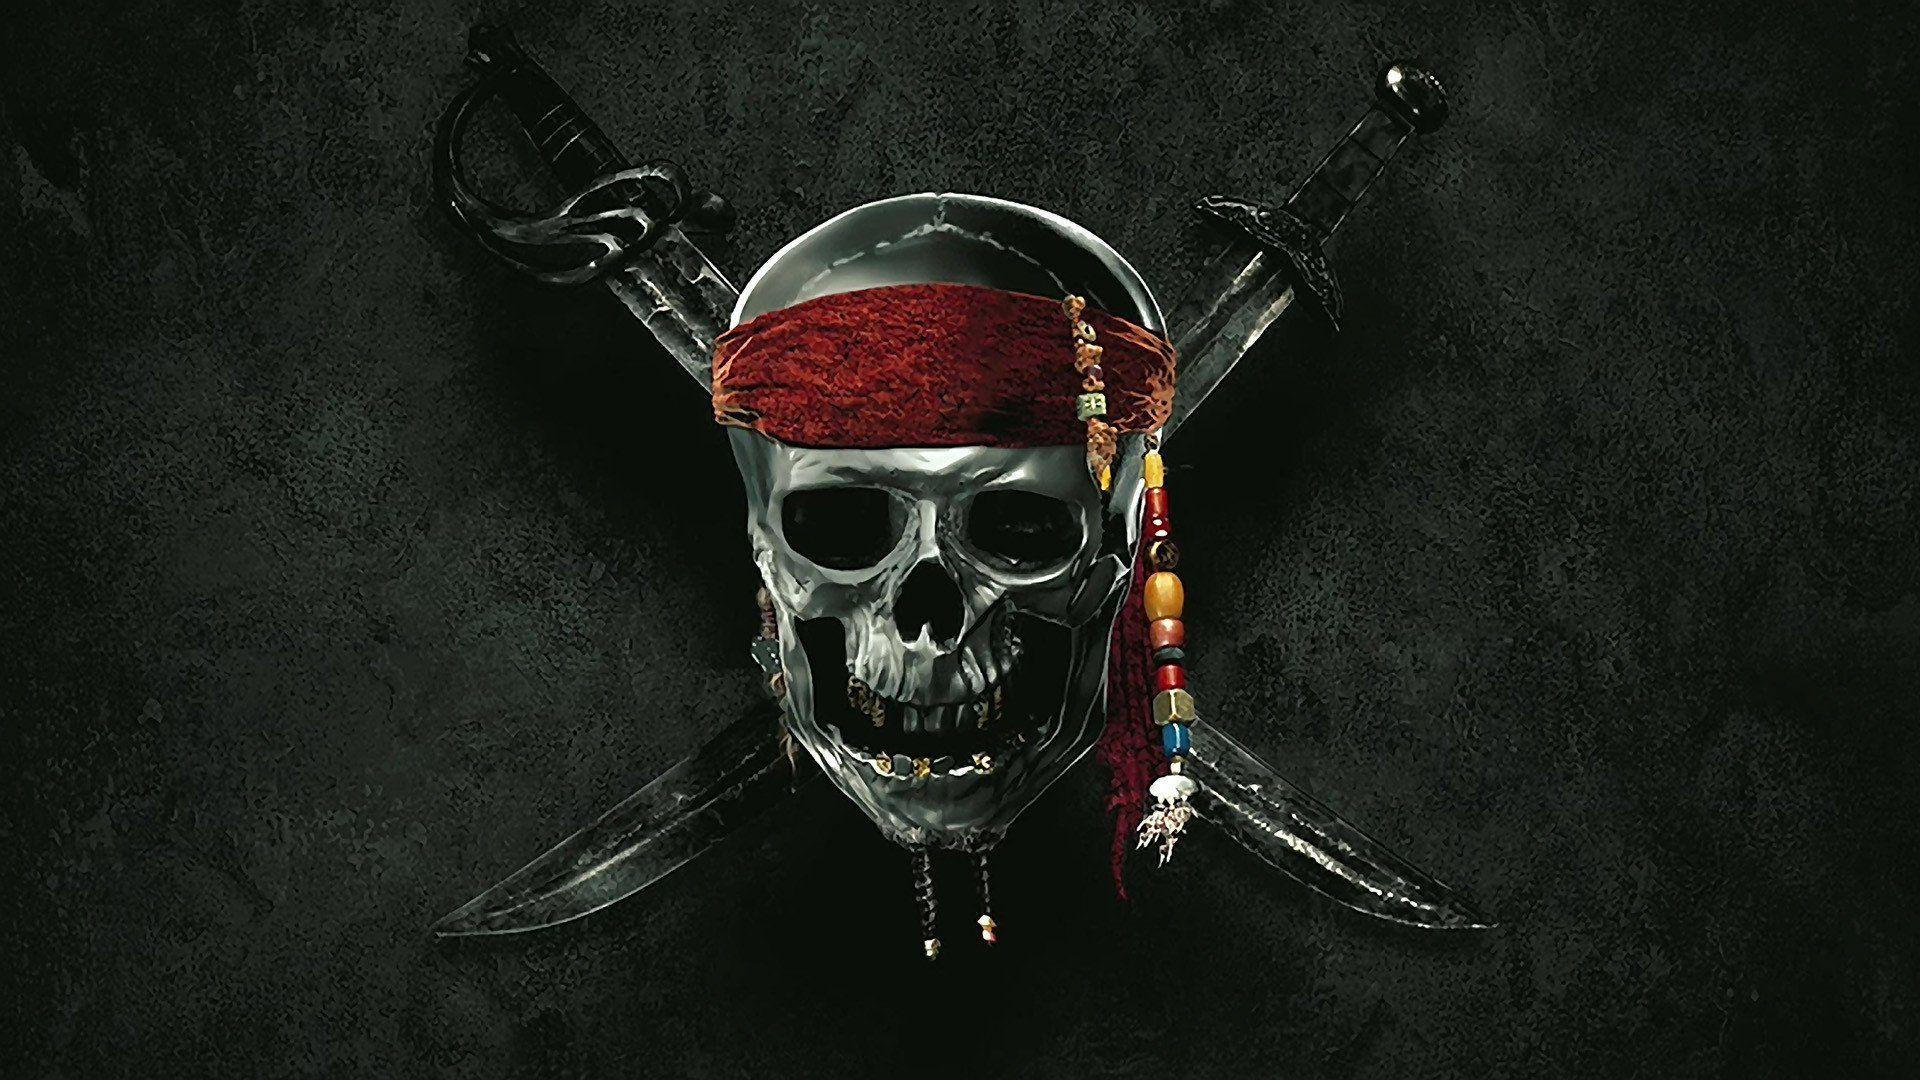 Pirates of the Caribbean Wallpapers.